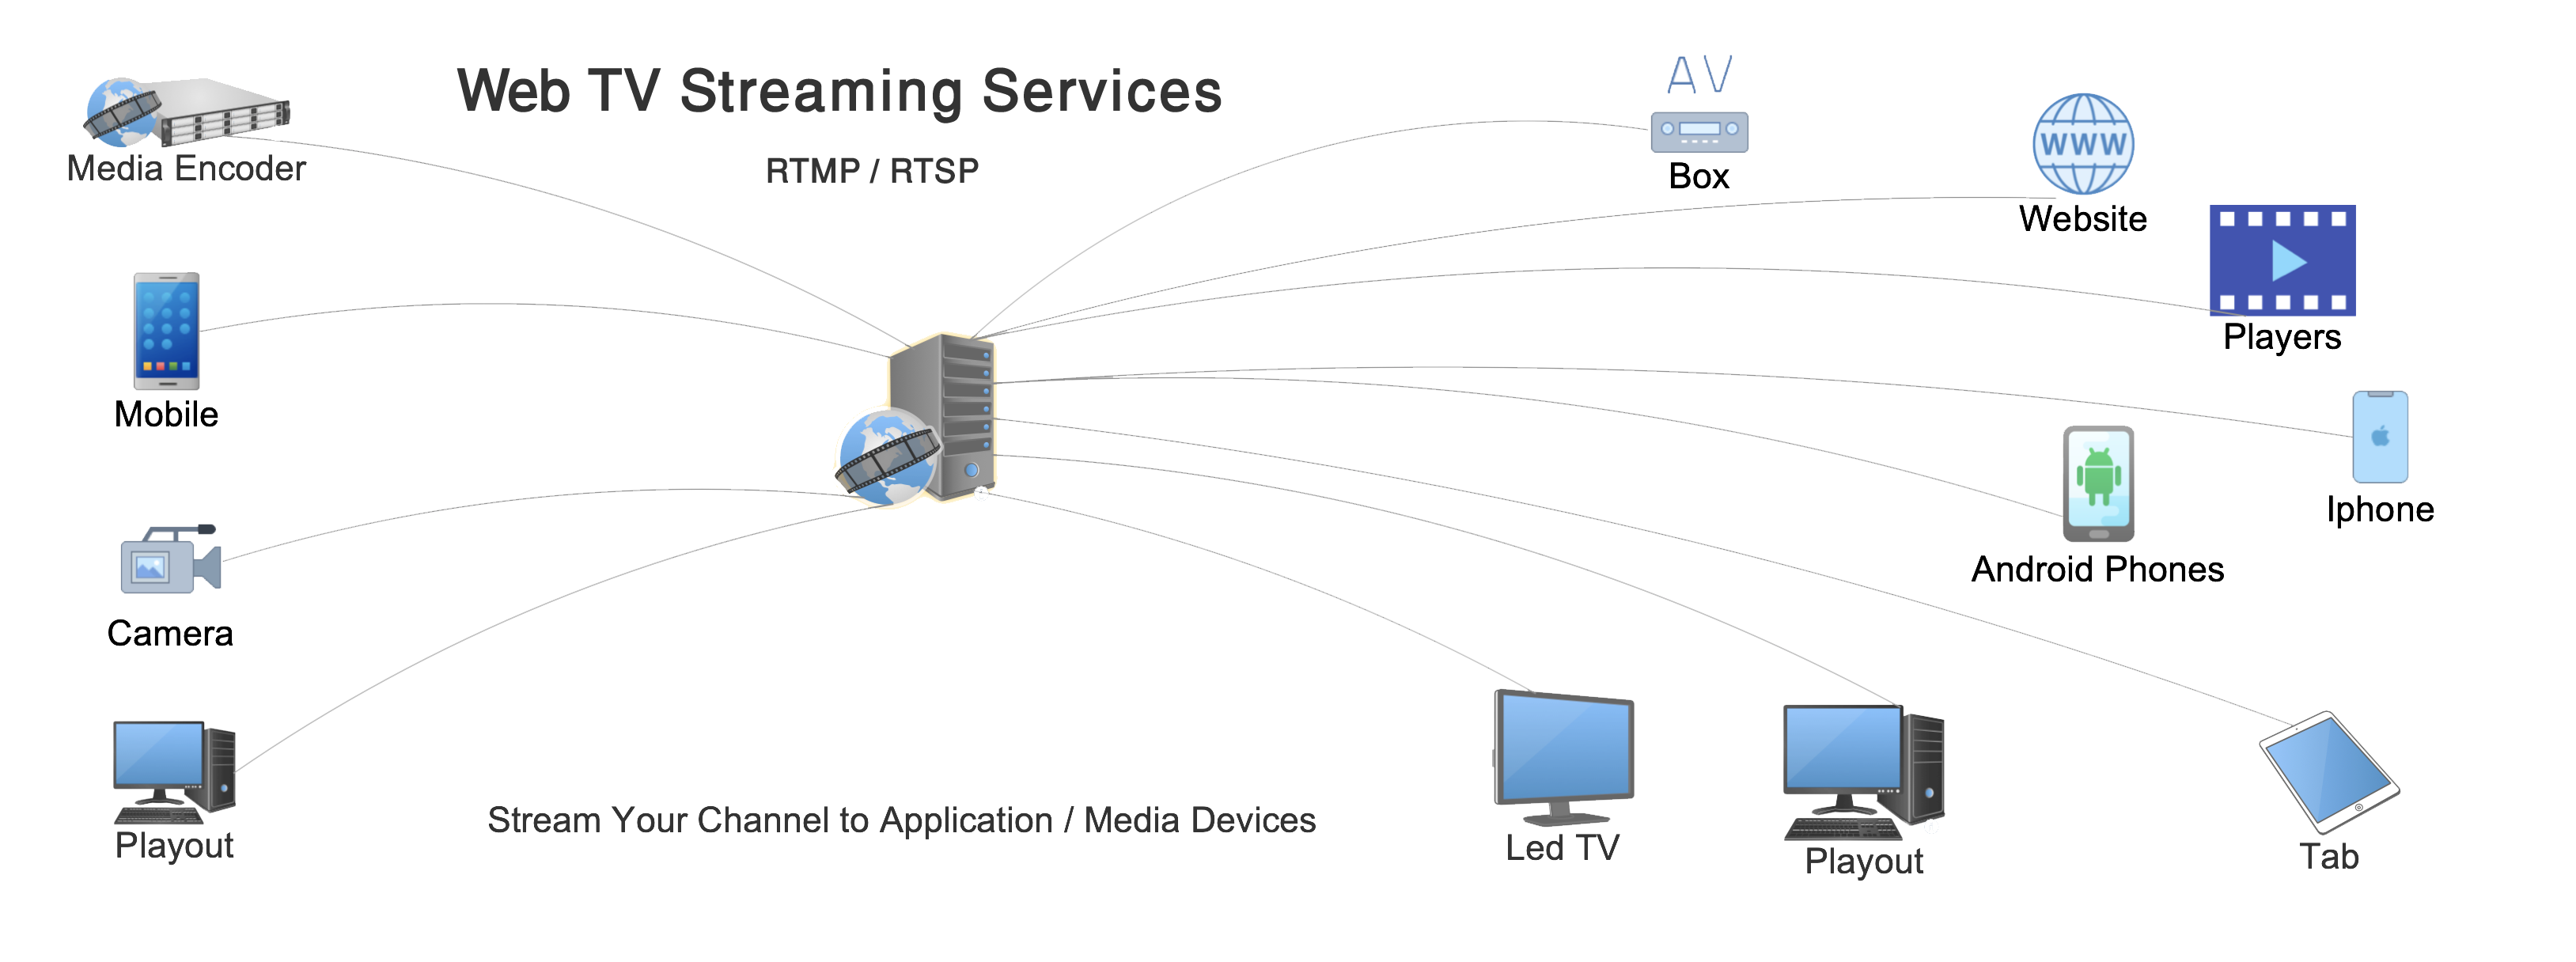 Web TV Streaming Services